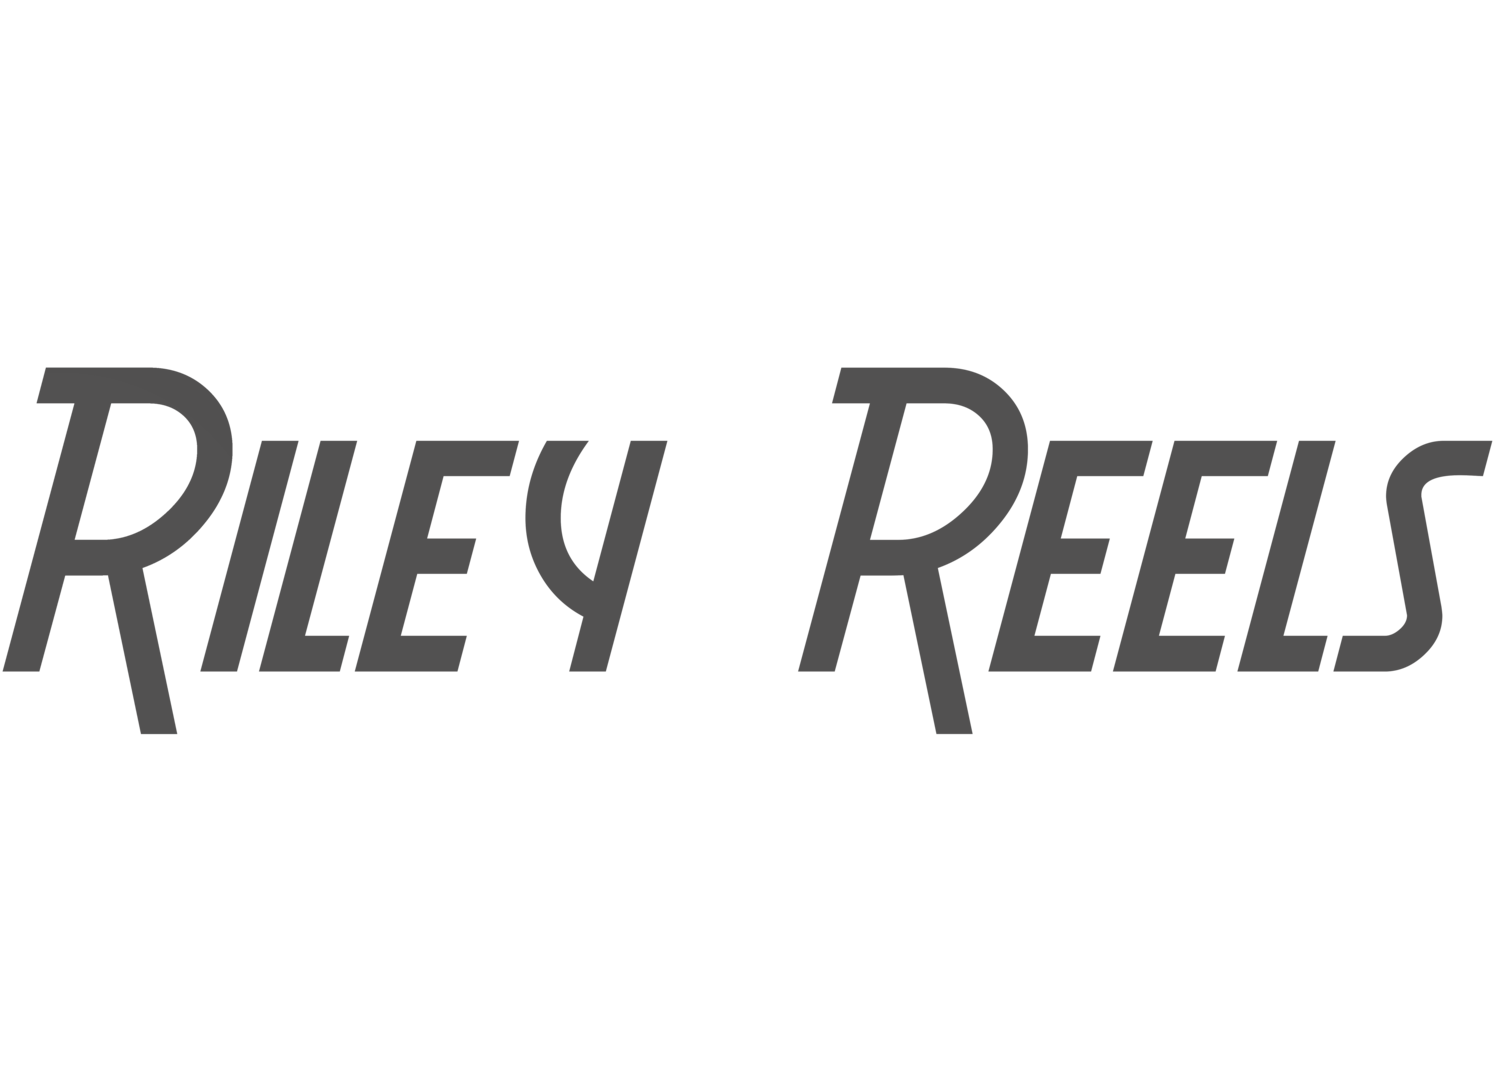 Riley Reels, LLC